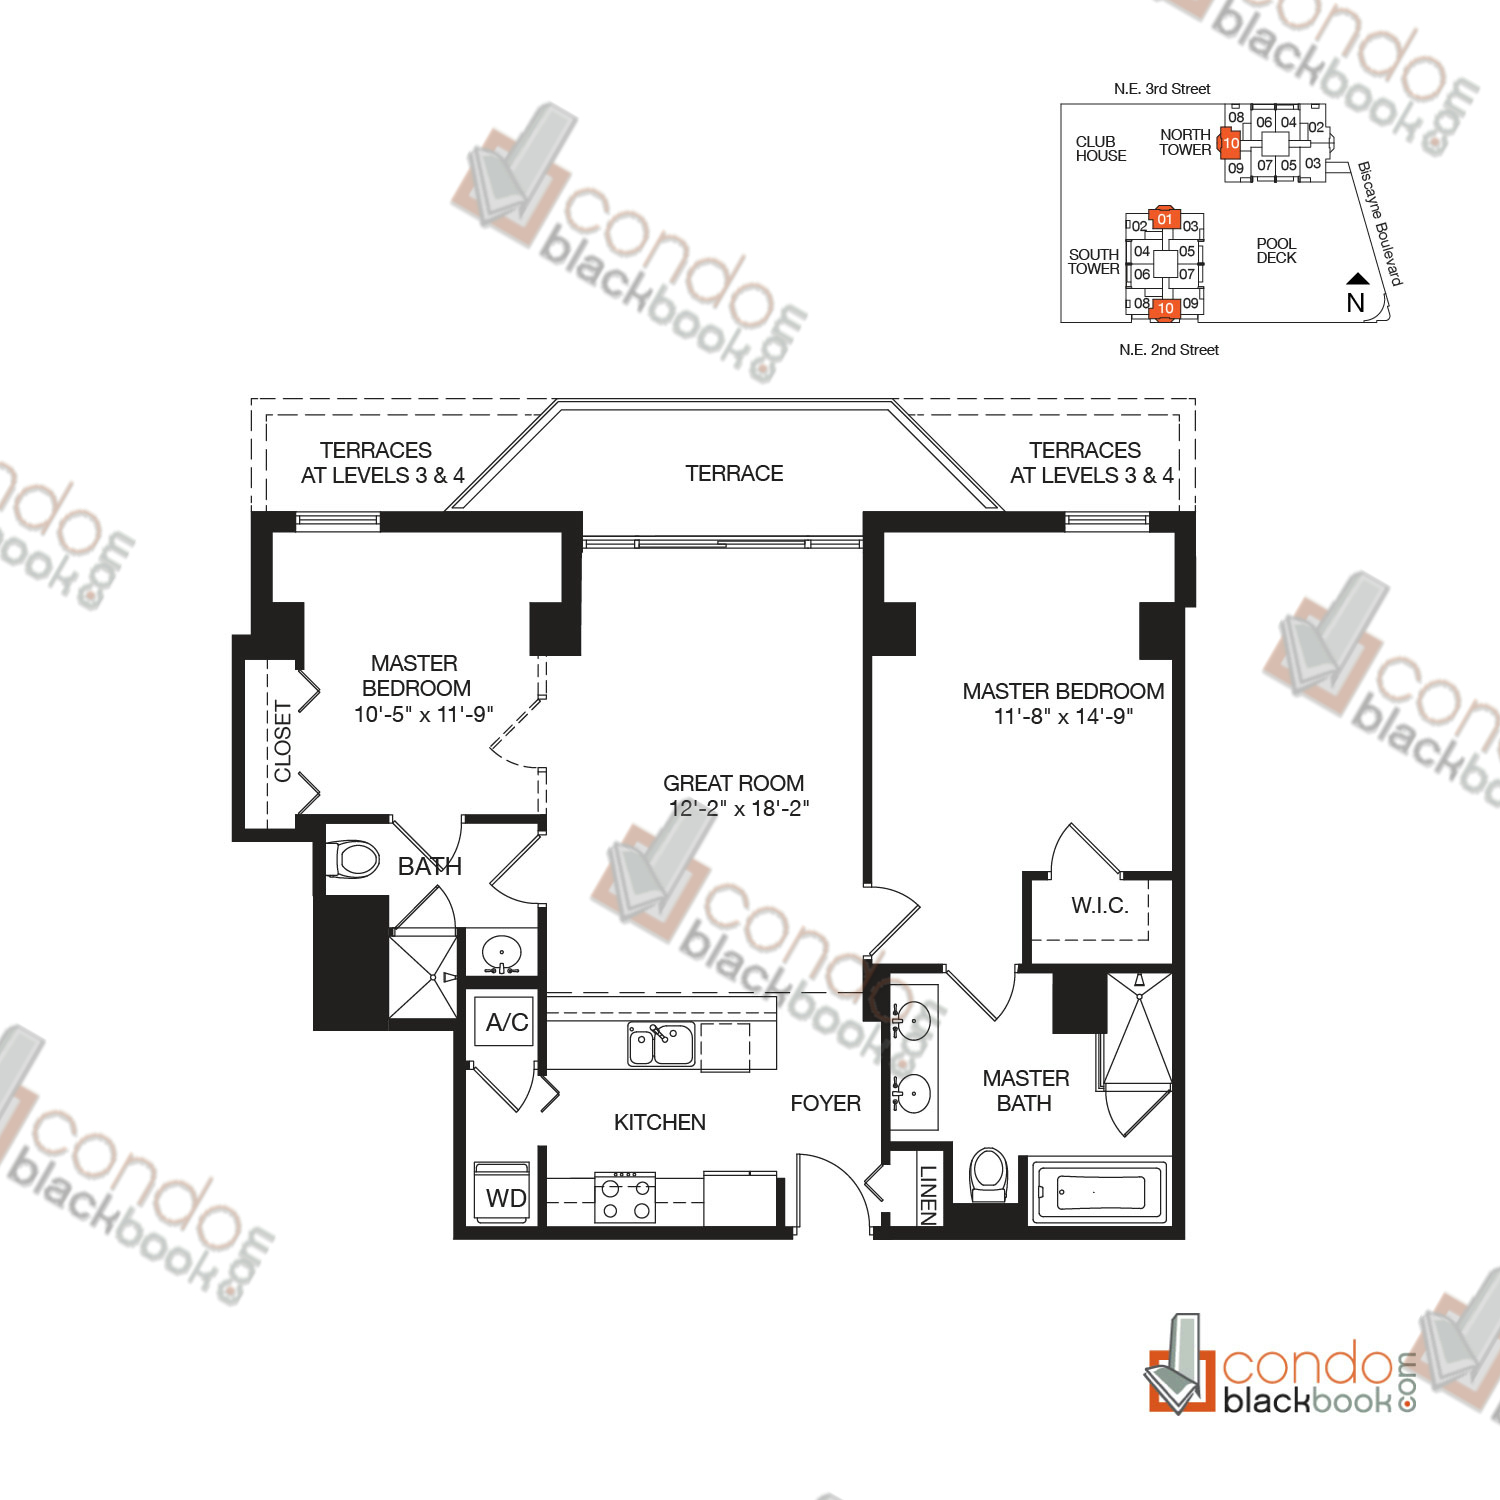 Floor plan for Vizcayne Downtown Miami Miami, model RESIDENCE 1, line 01, 10, 1/2+DEN bedrooms, 1,044 sq ft